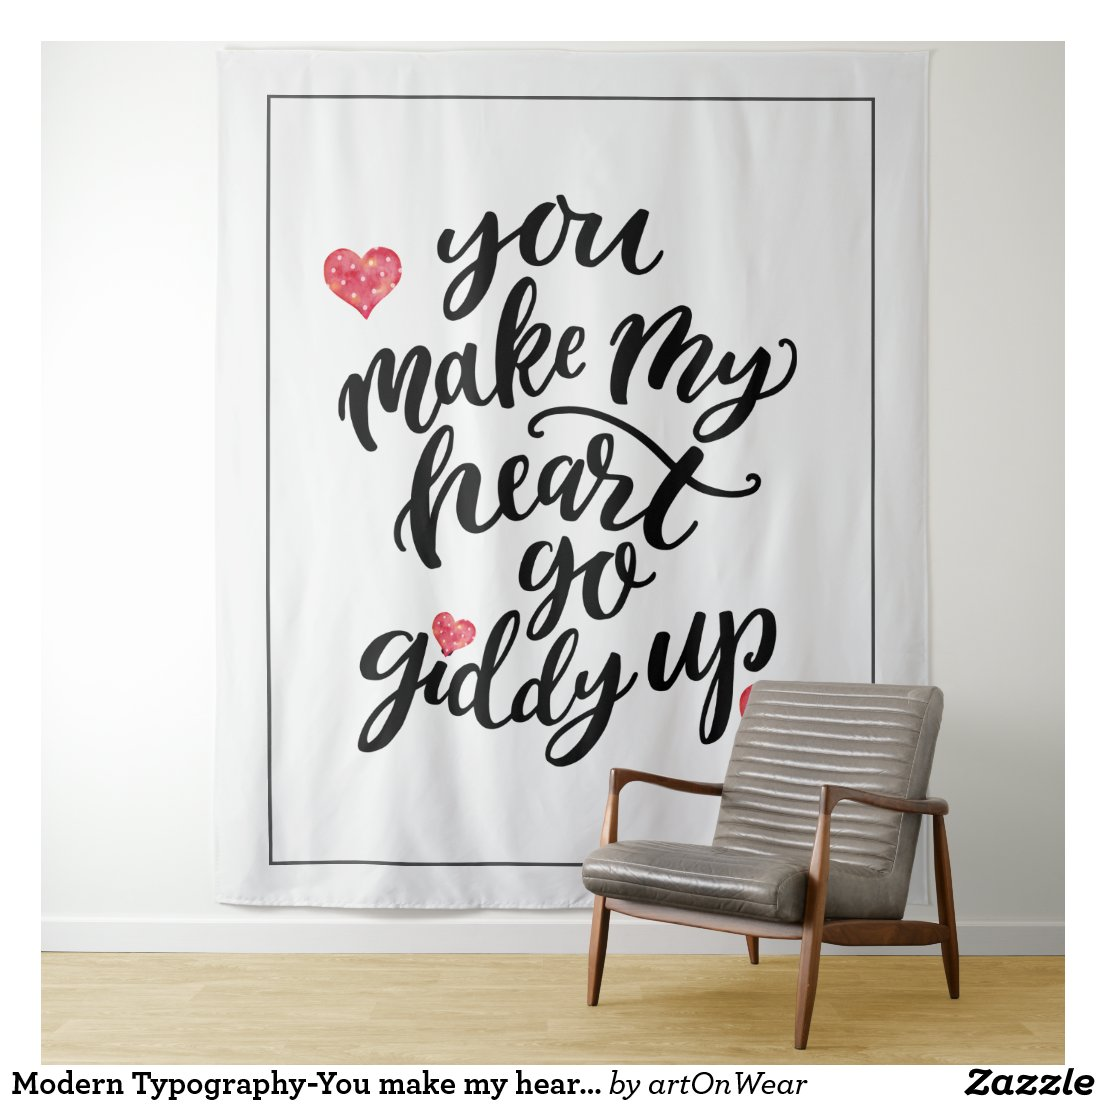 Modern Typography-You make my heart go giddy up